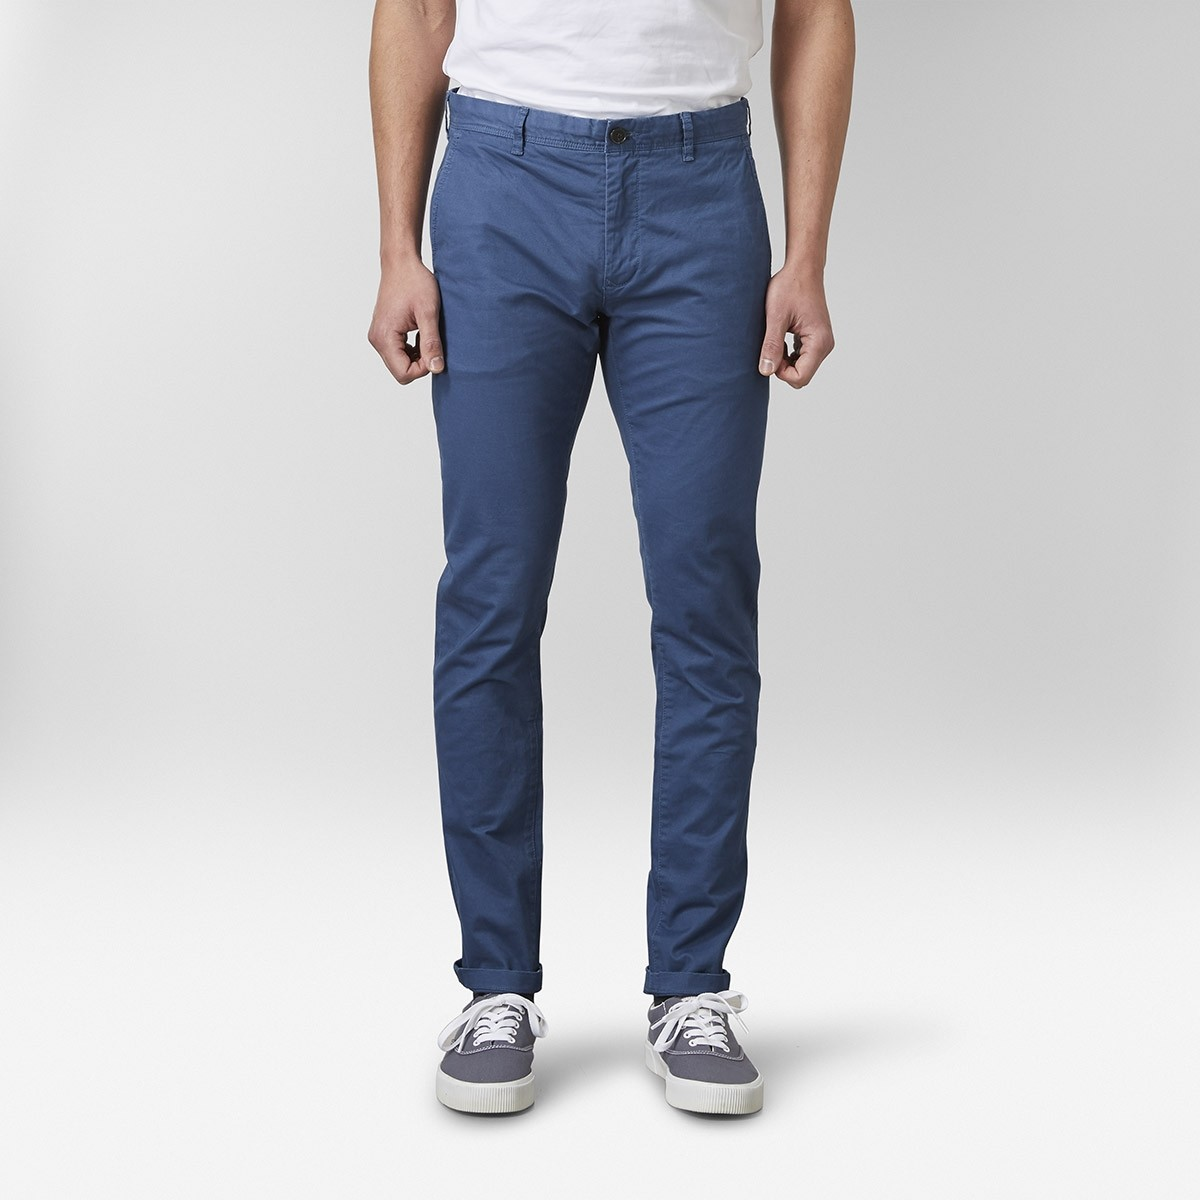 Barton Stretch Chinos Mellanblå   East West   Brothers.se